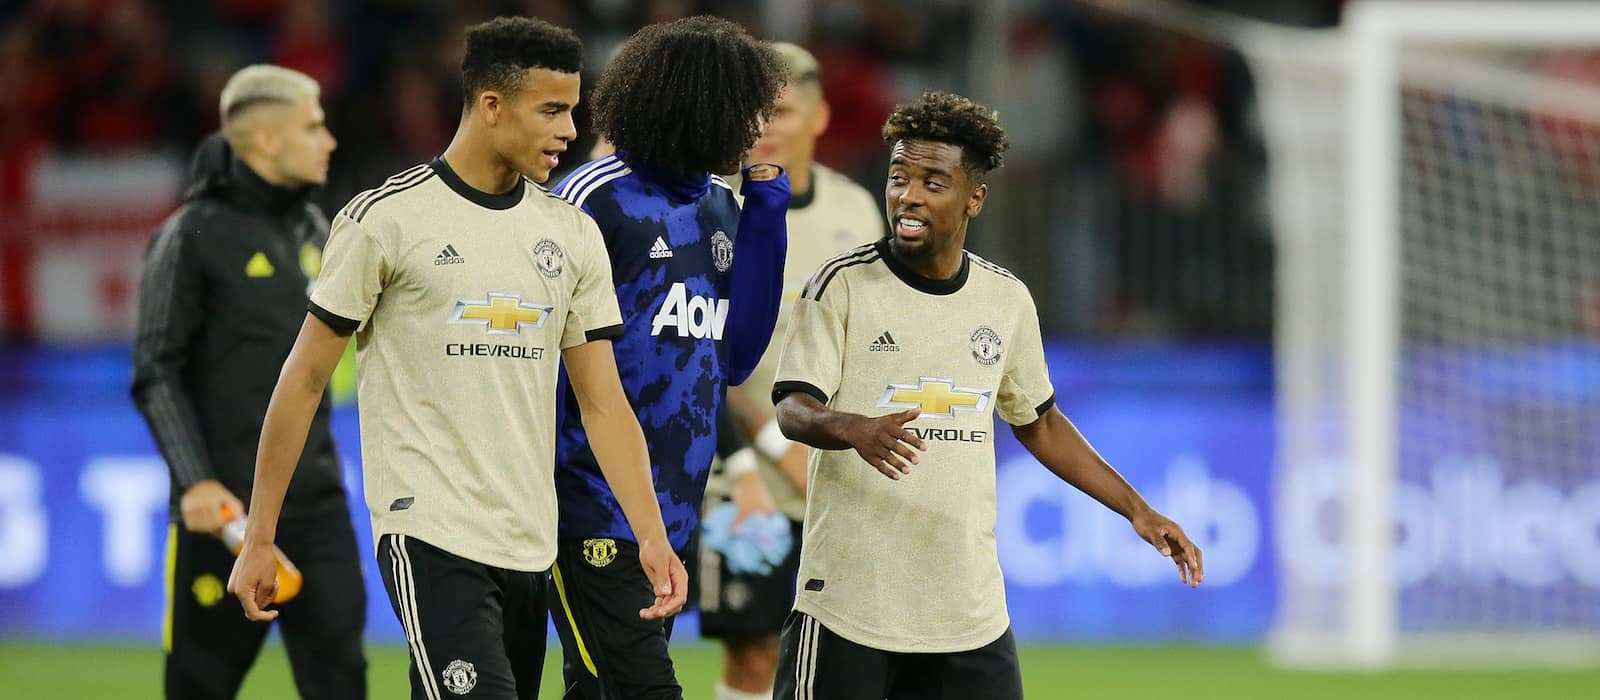 Manchester United fans fuming with Ole Gunnar Solskjaer for ignoring Angel Gomes against Wolverhampton Wanderers